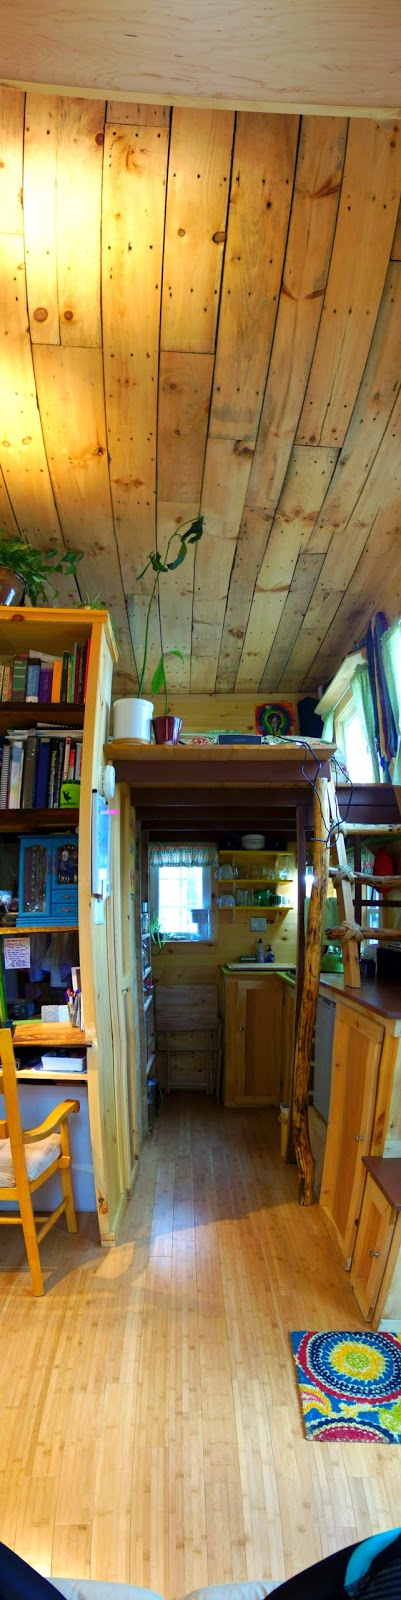 Tiny Home Designs: Off The Grid, No Running Water, Tiny House. Used Reclaimed